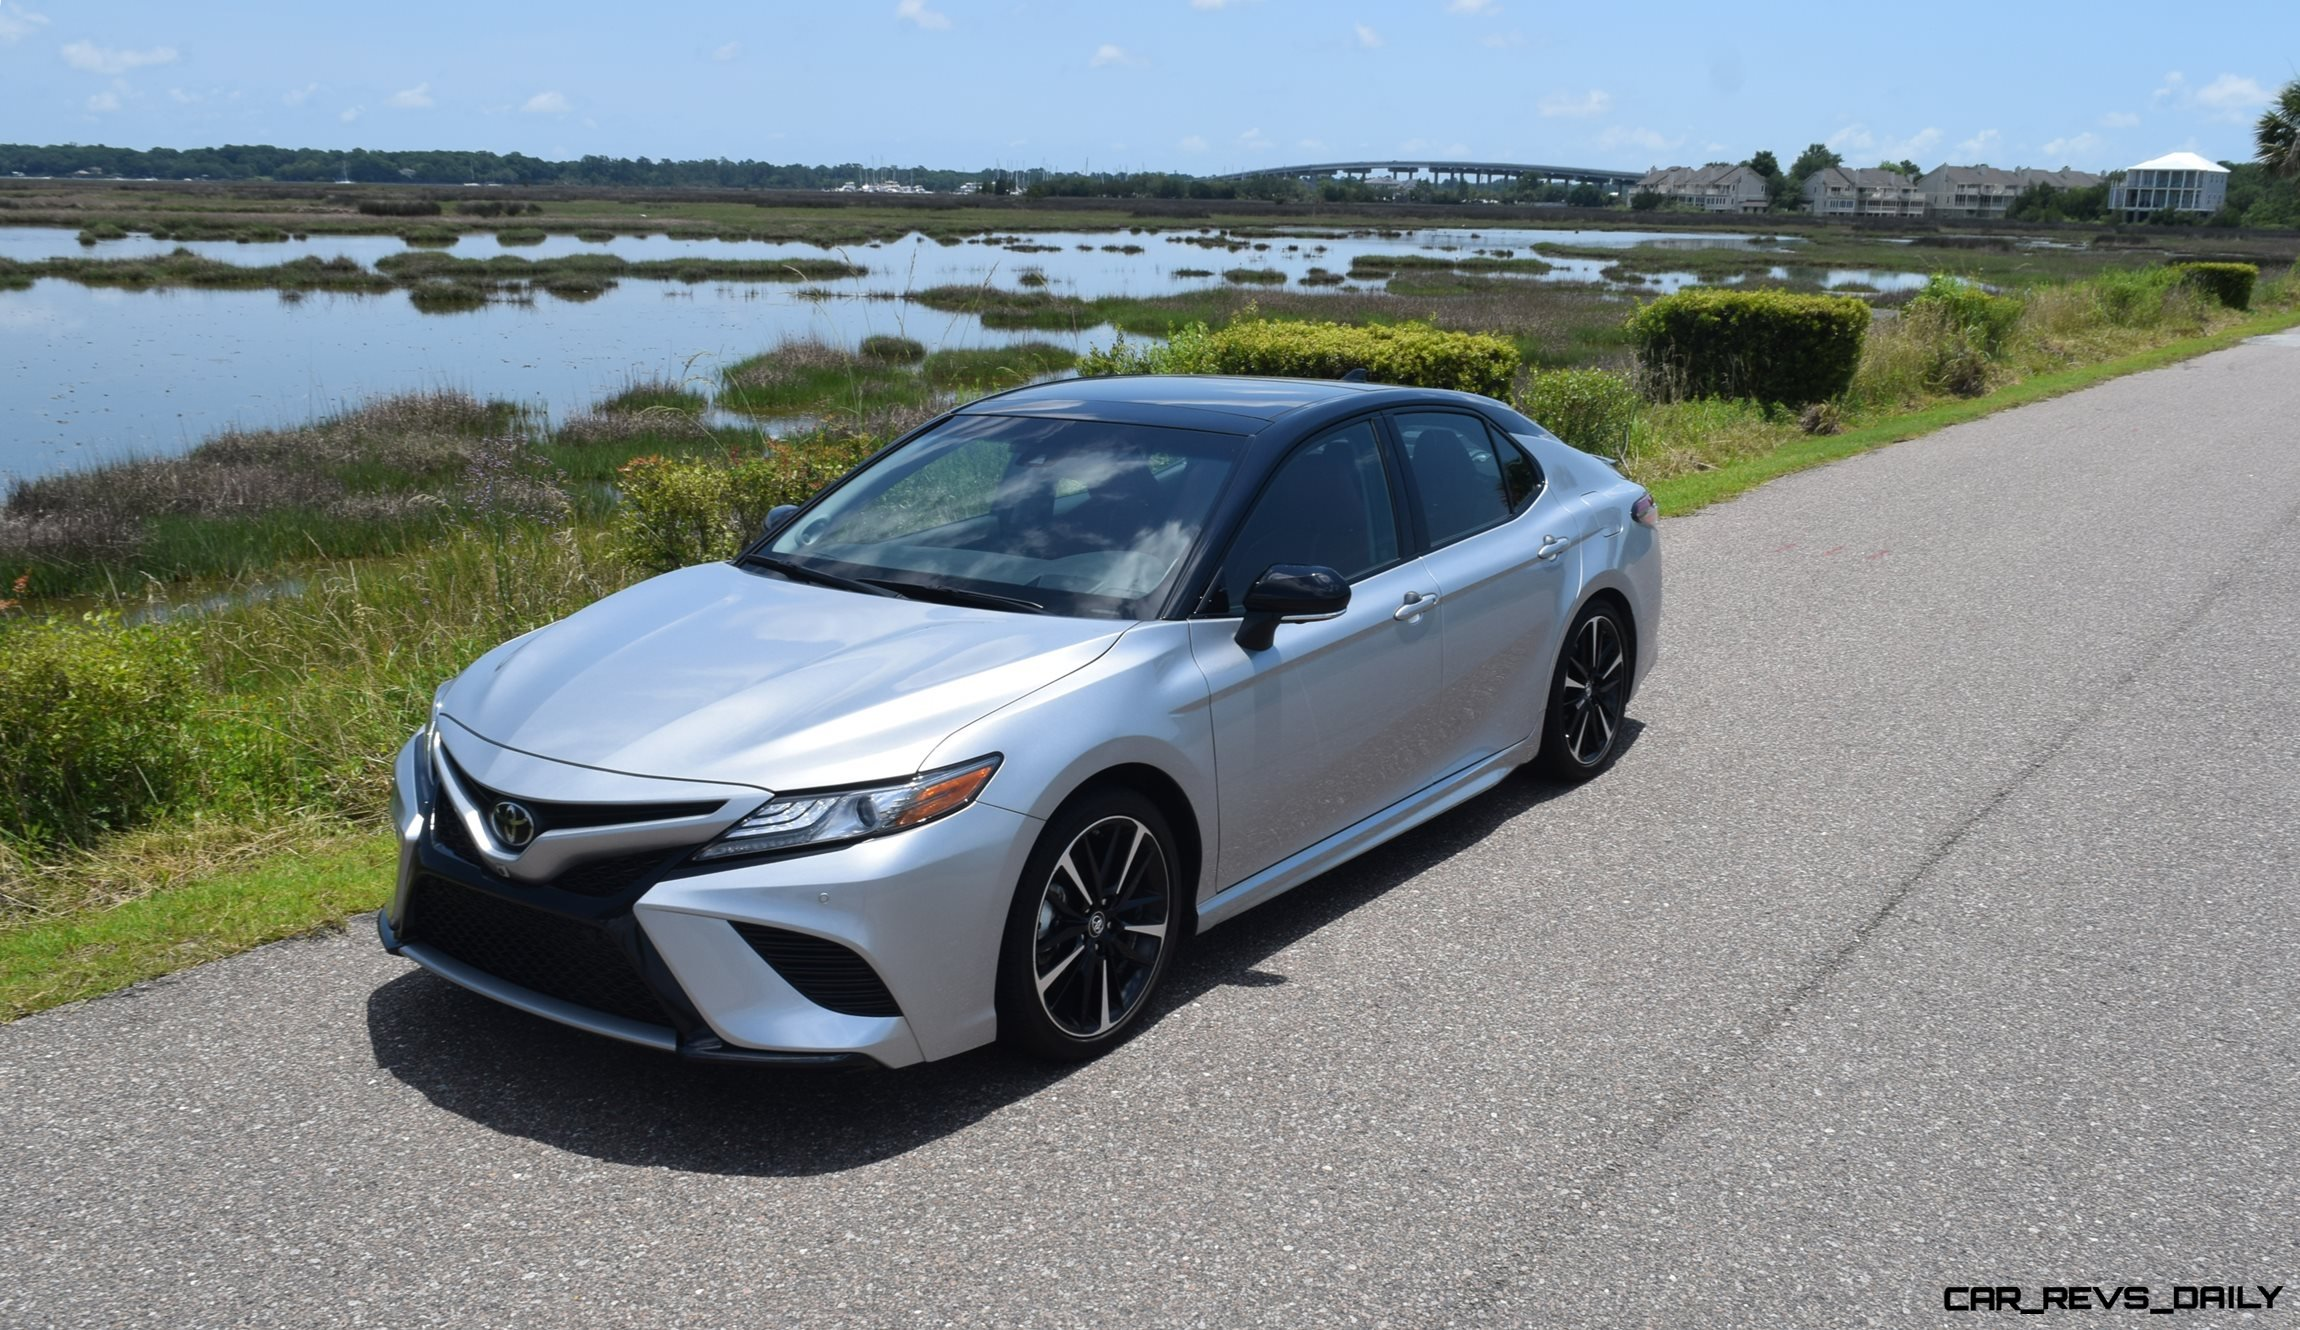 2016 Toyota Camry Xse >> 2018 Toyota Camry XSE V6 - Road Test Review w/ Performance Drive Video » LATEST NEWS